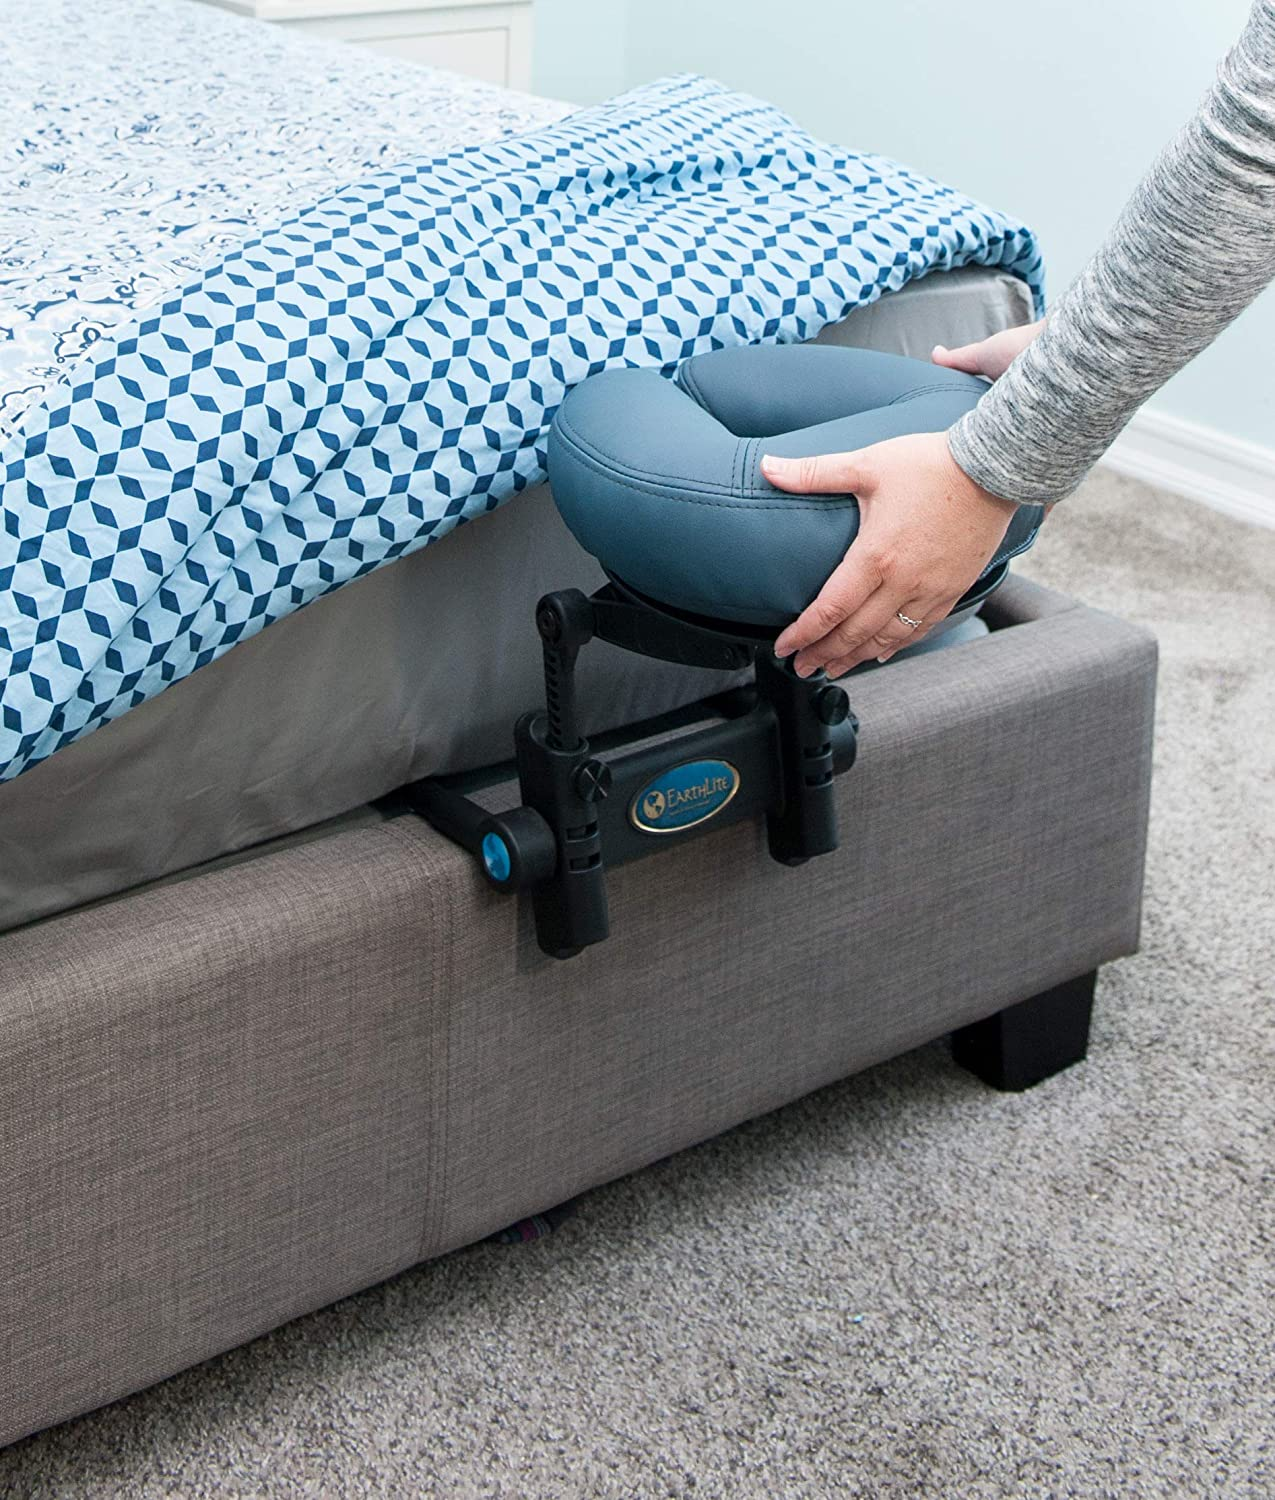 EARTHLITE Massage Kit Travelmate - Ultra-Portable Face Down Tabletop Massage System perfect for Vitrectomy Recovery & On-The-Go Massage, Black: Sports & Outdoors